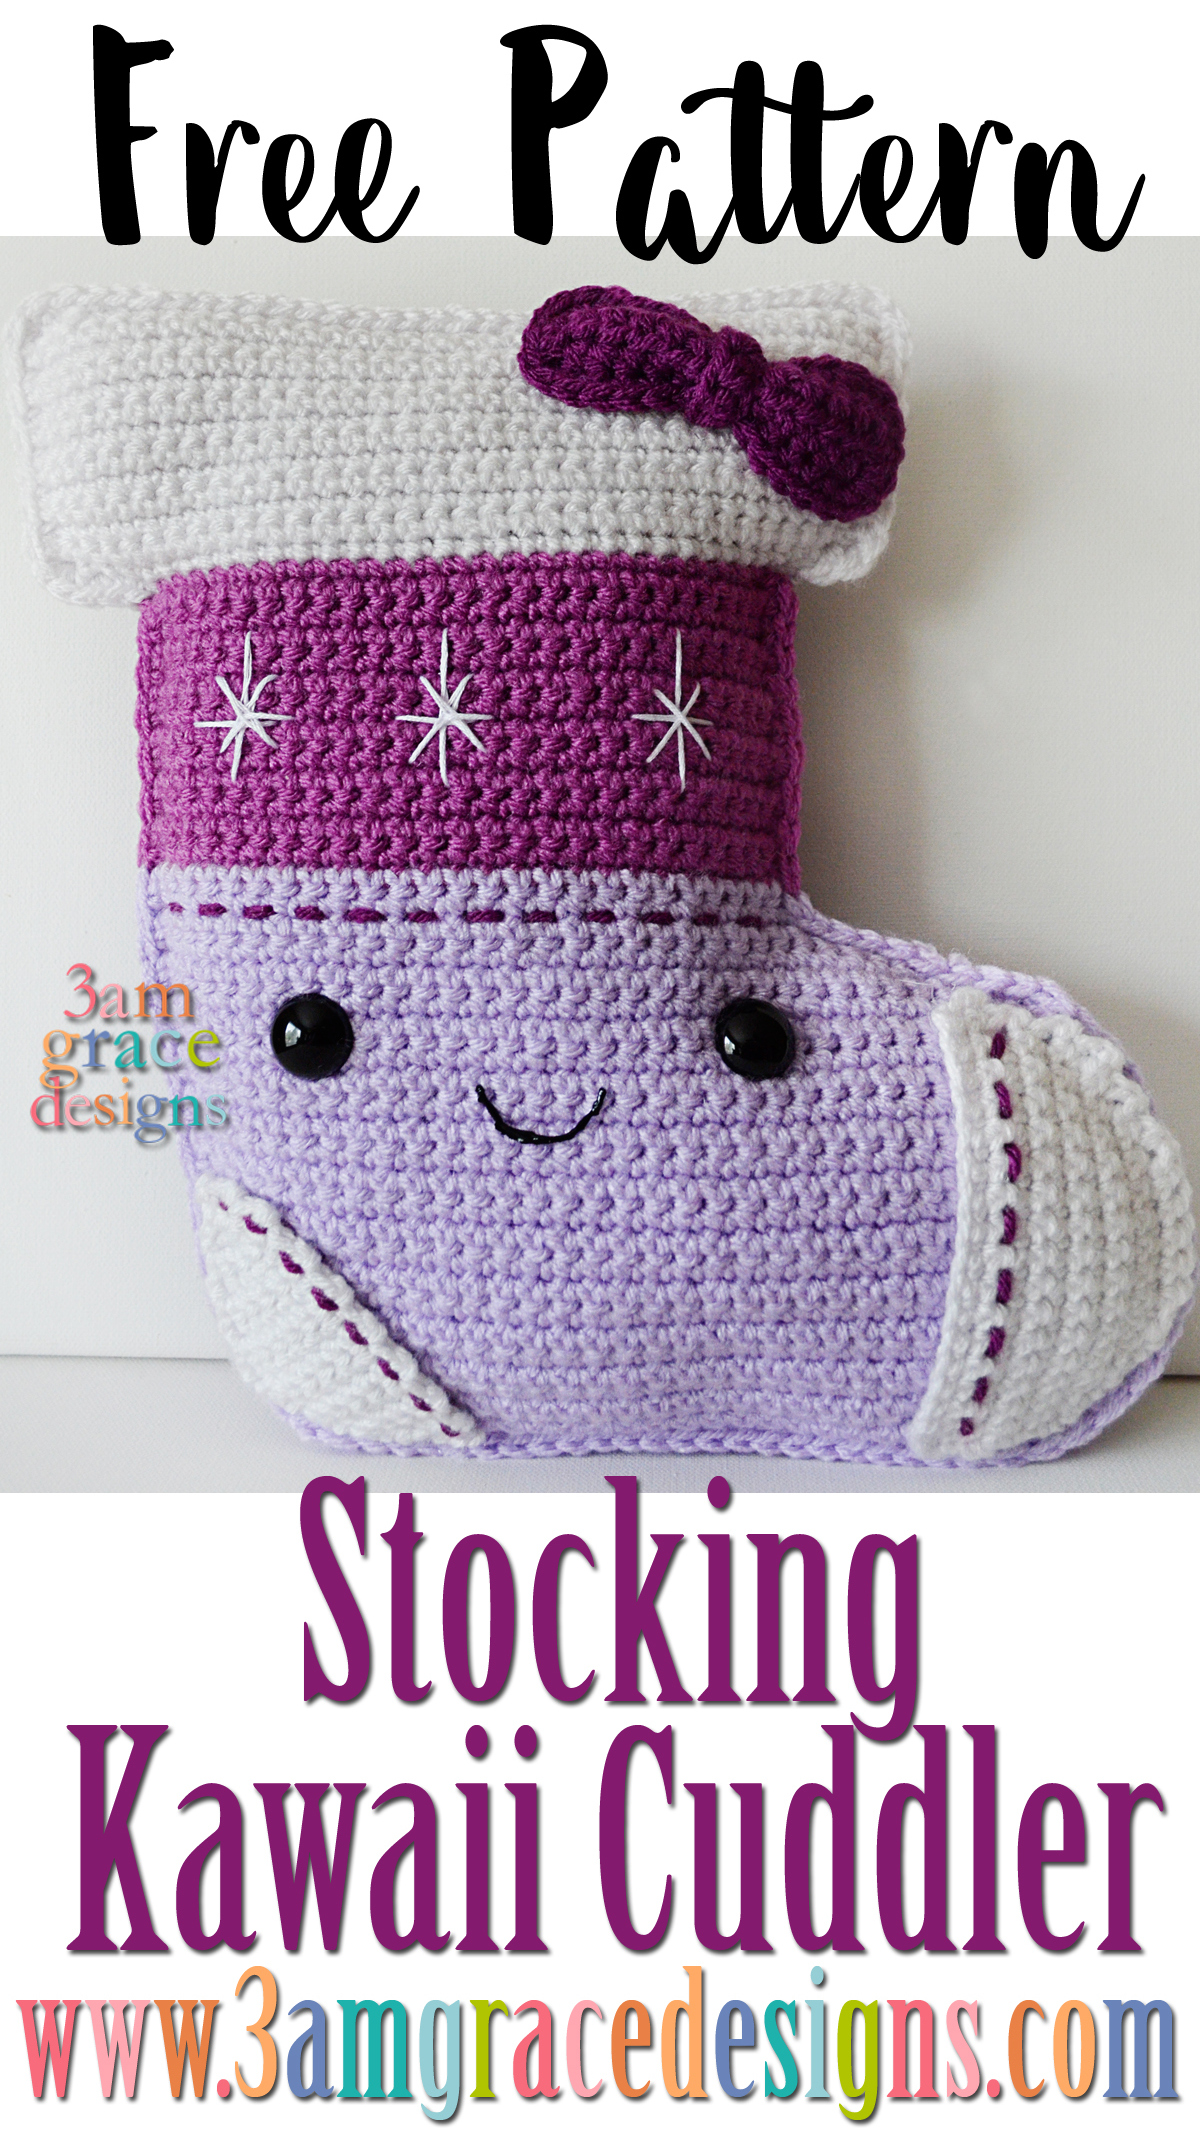 Our free Christmas Stocking crochet pattern is an easy amigurumi design for the holidays!